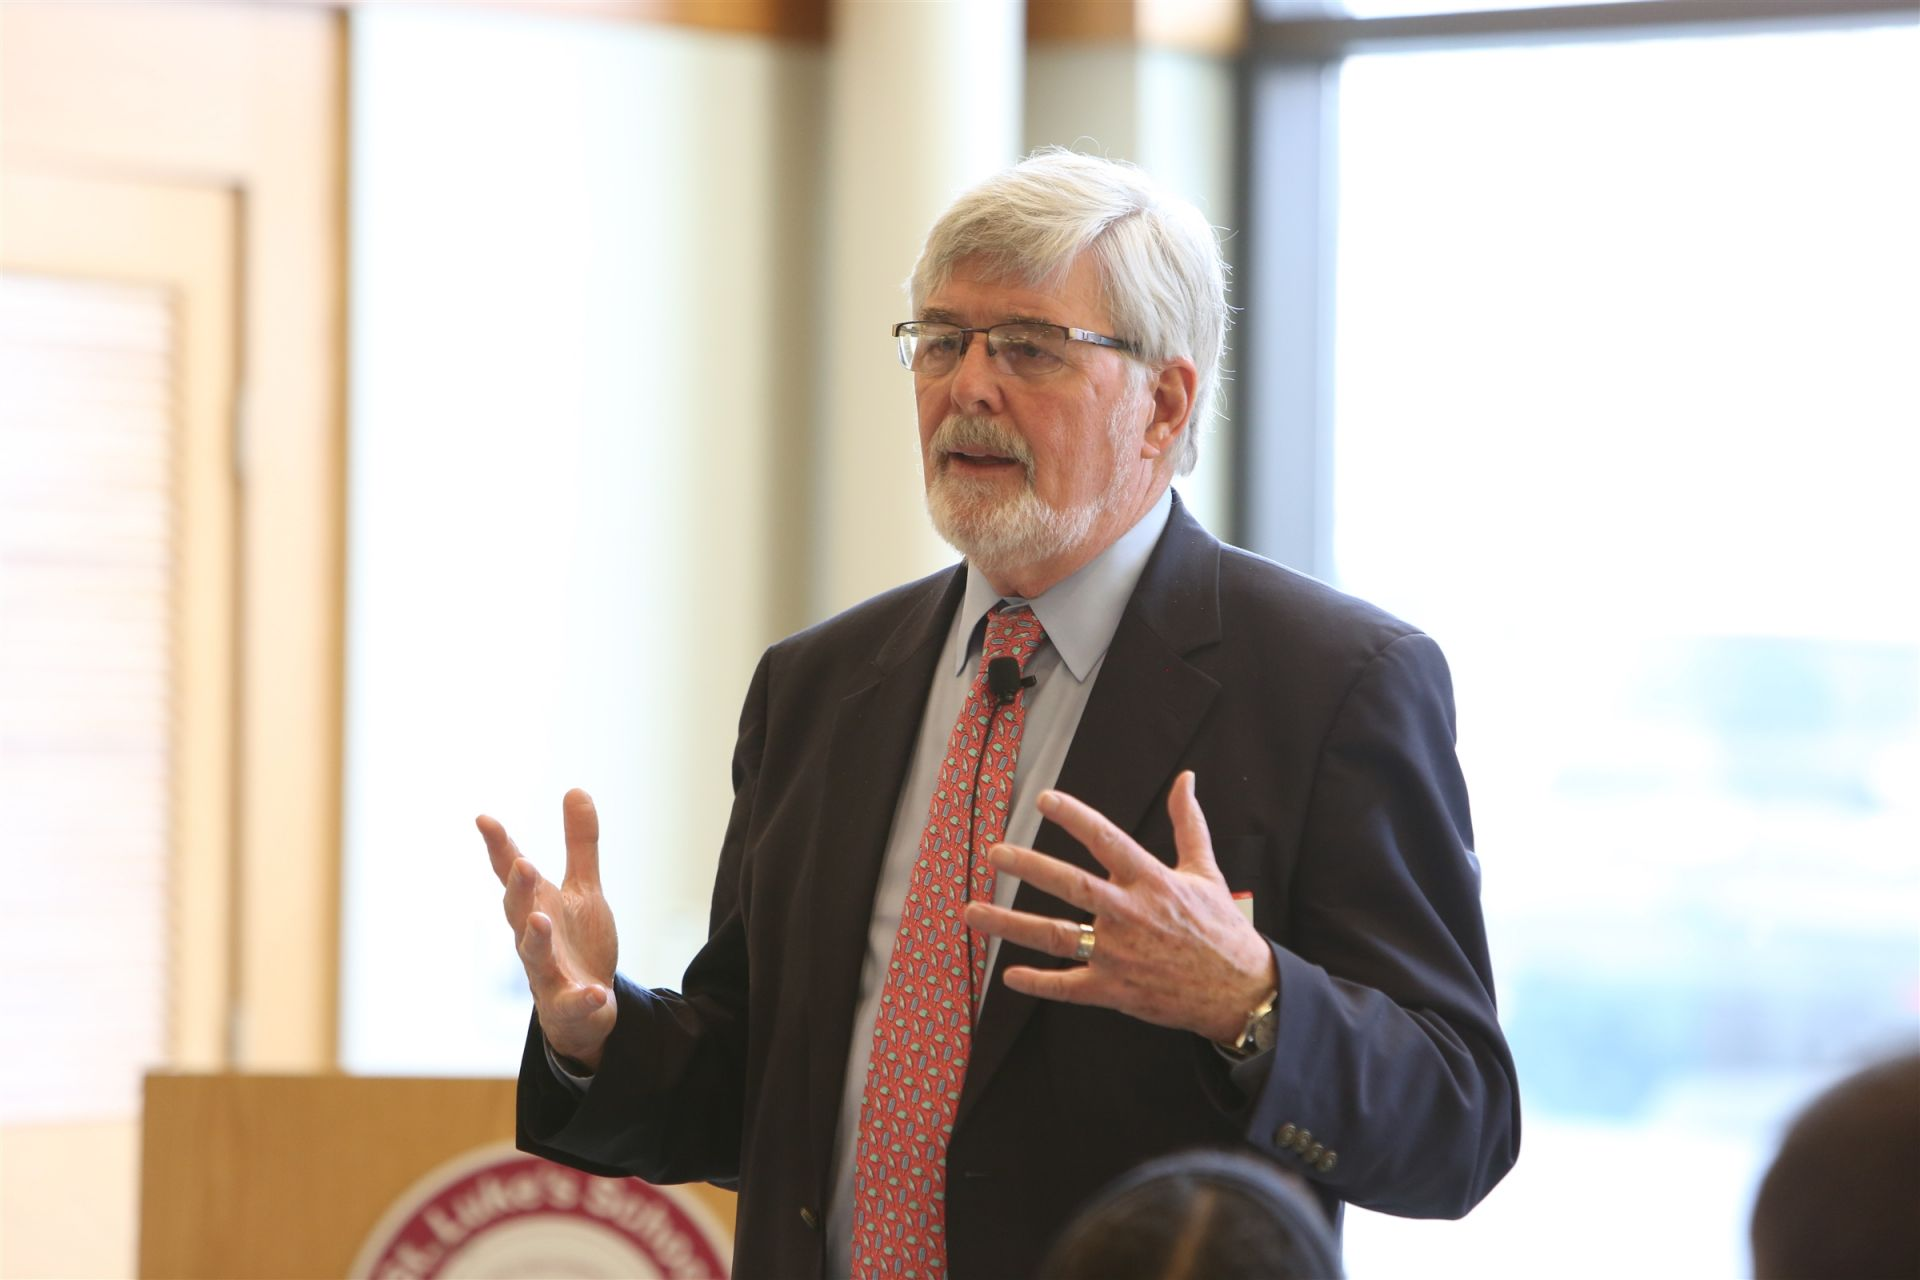 PA Speaker Series: Dr. Michael Thompson